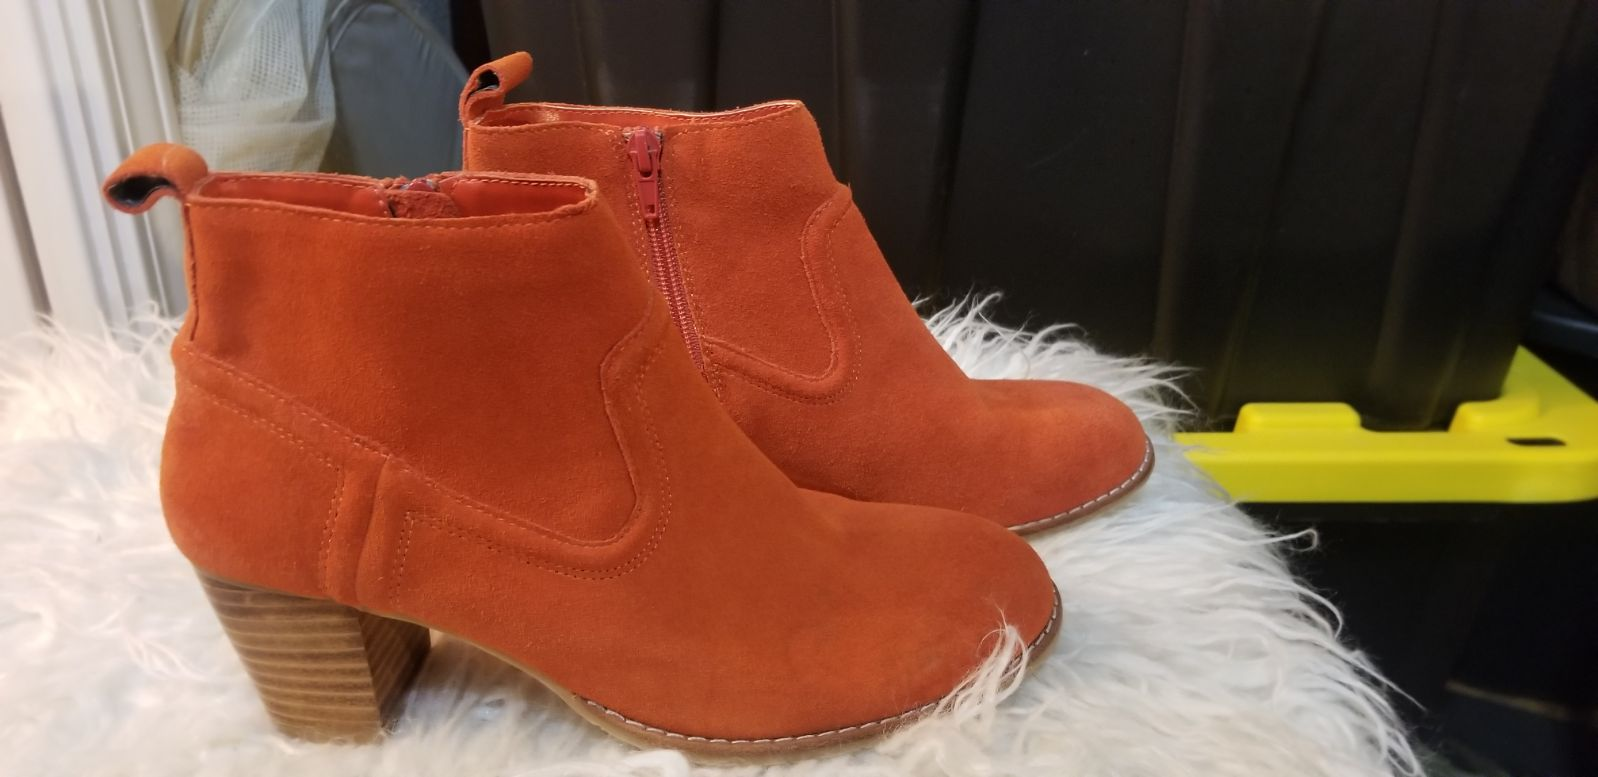 Dolce Vita womens ankle boots